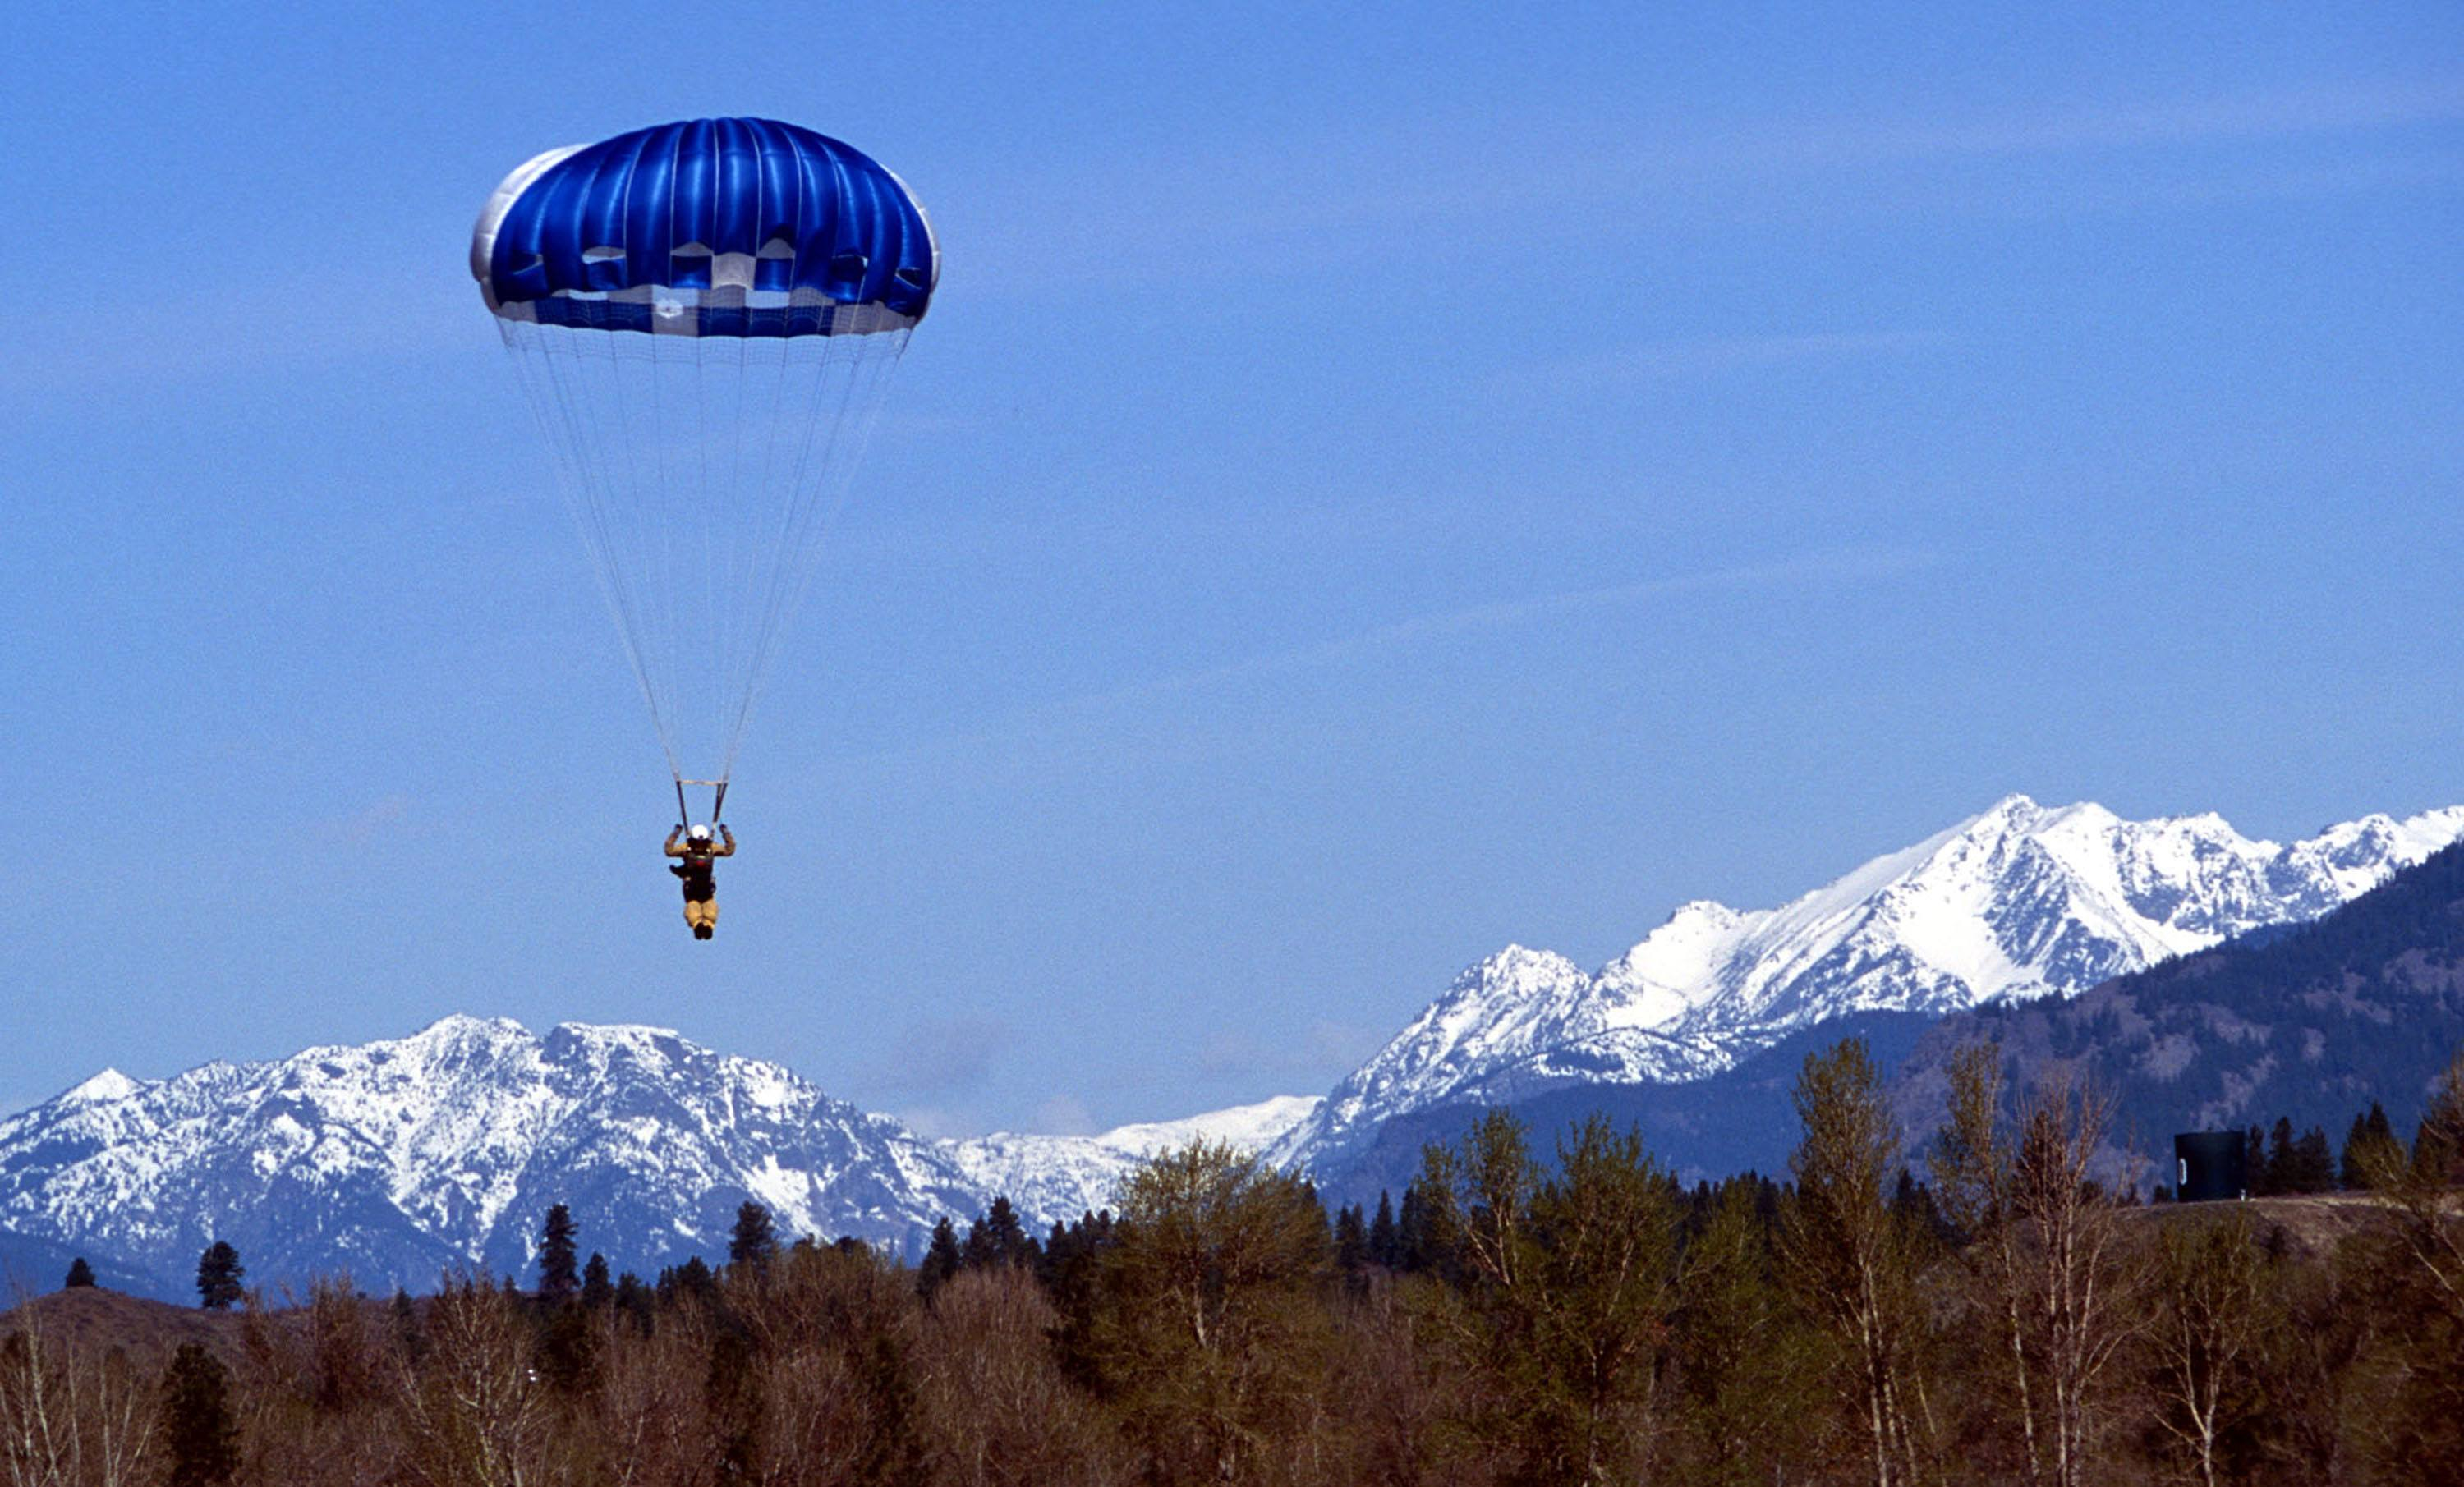 Parachuting in Washington